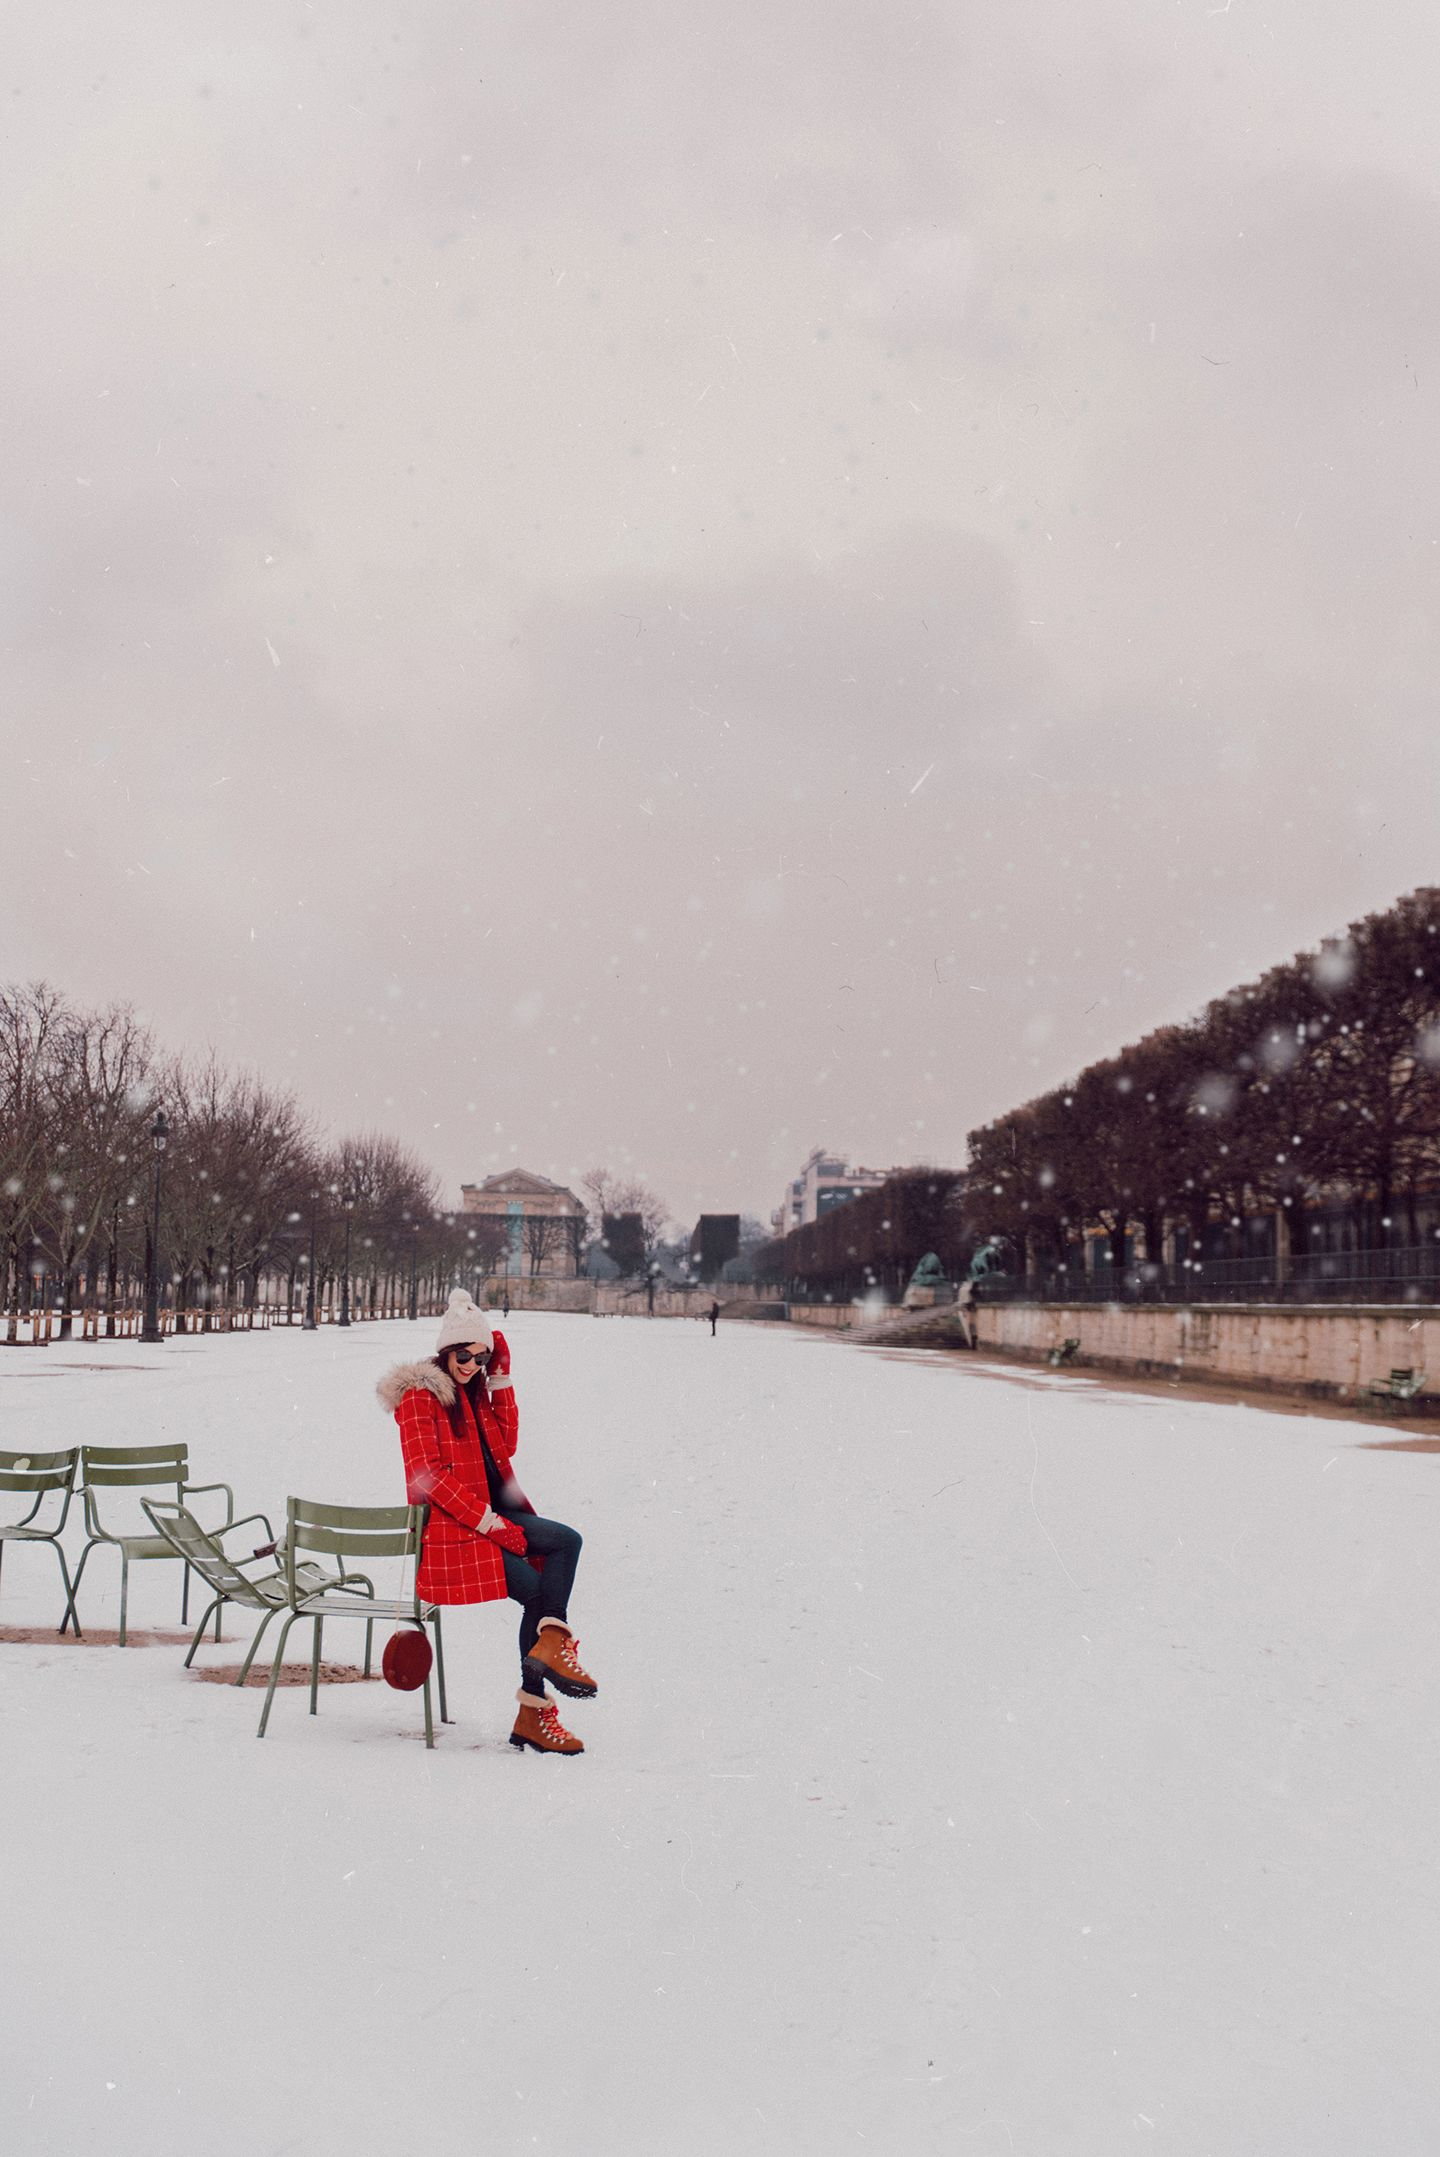 Blog-mode-and-the-city-looks-de-la-neige-a-paris-5